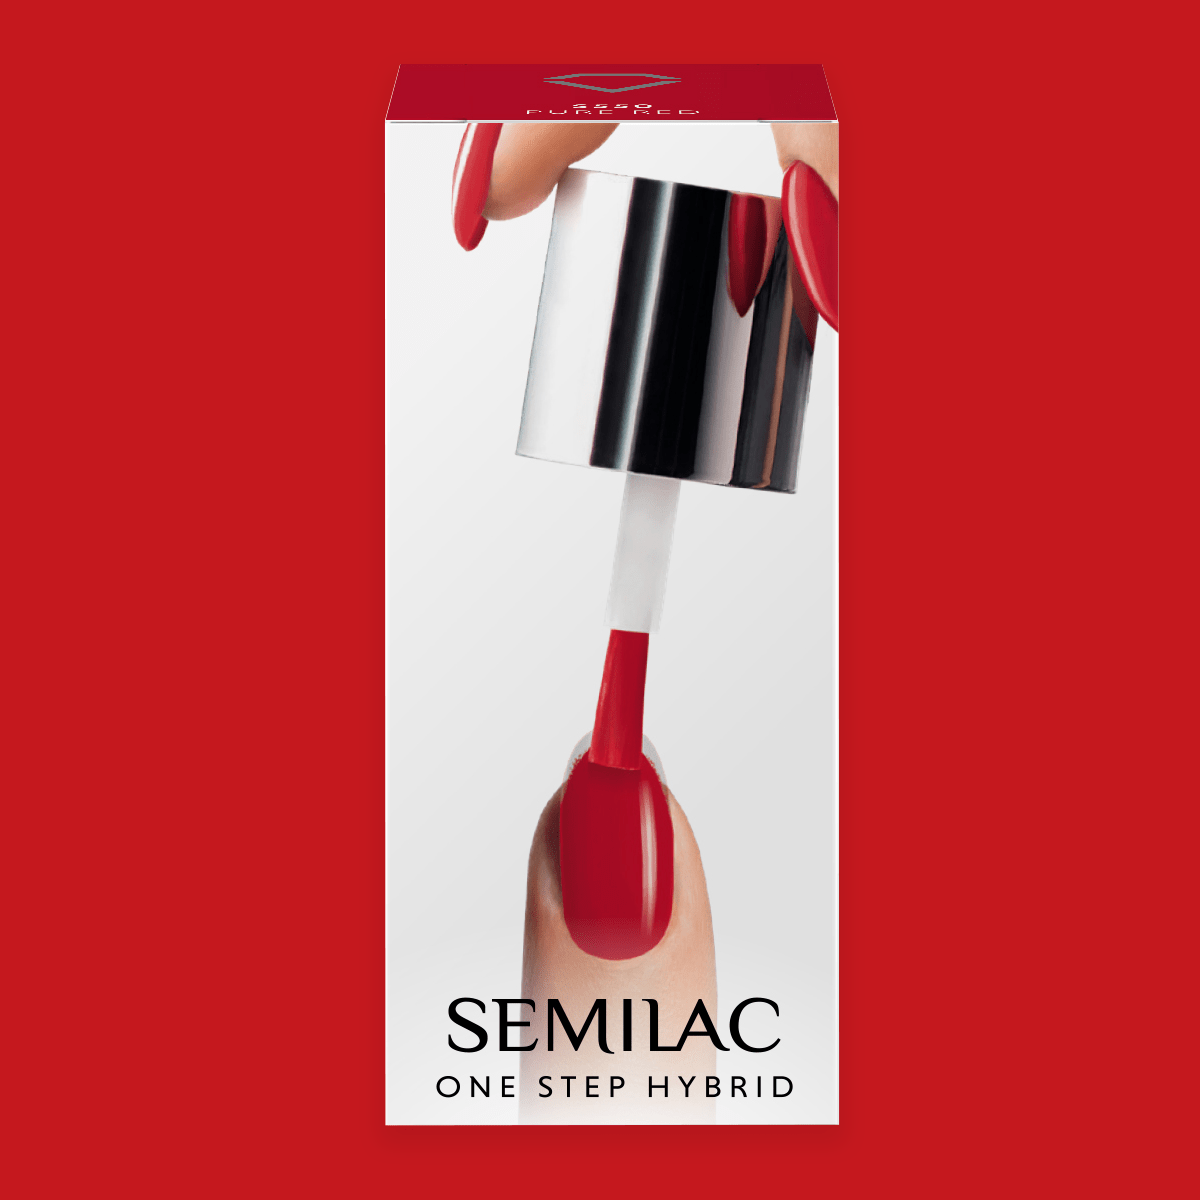 Semilac One Step Hybrid Gel Polish 5ml 550 Pure Red - FlowertushBeauty